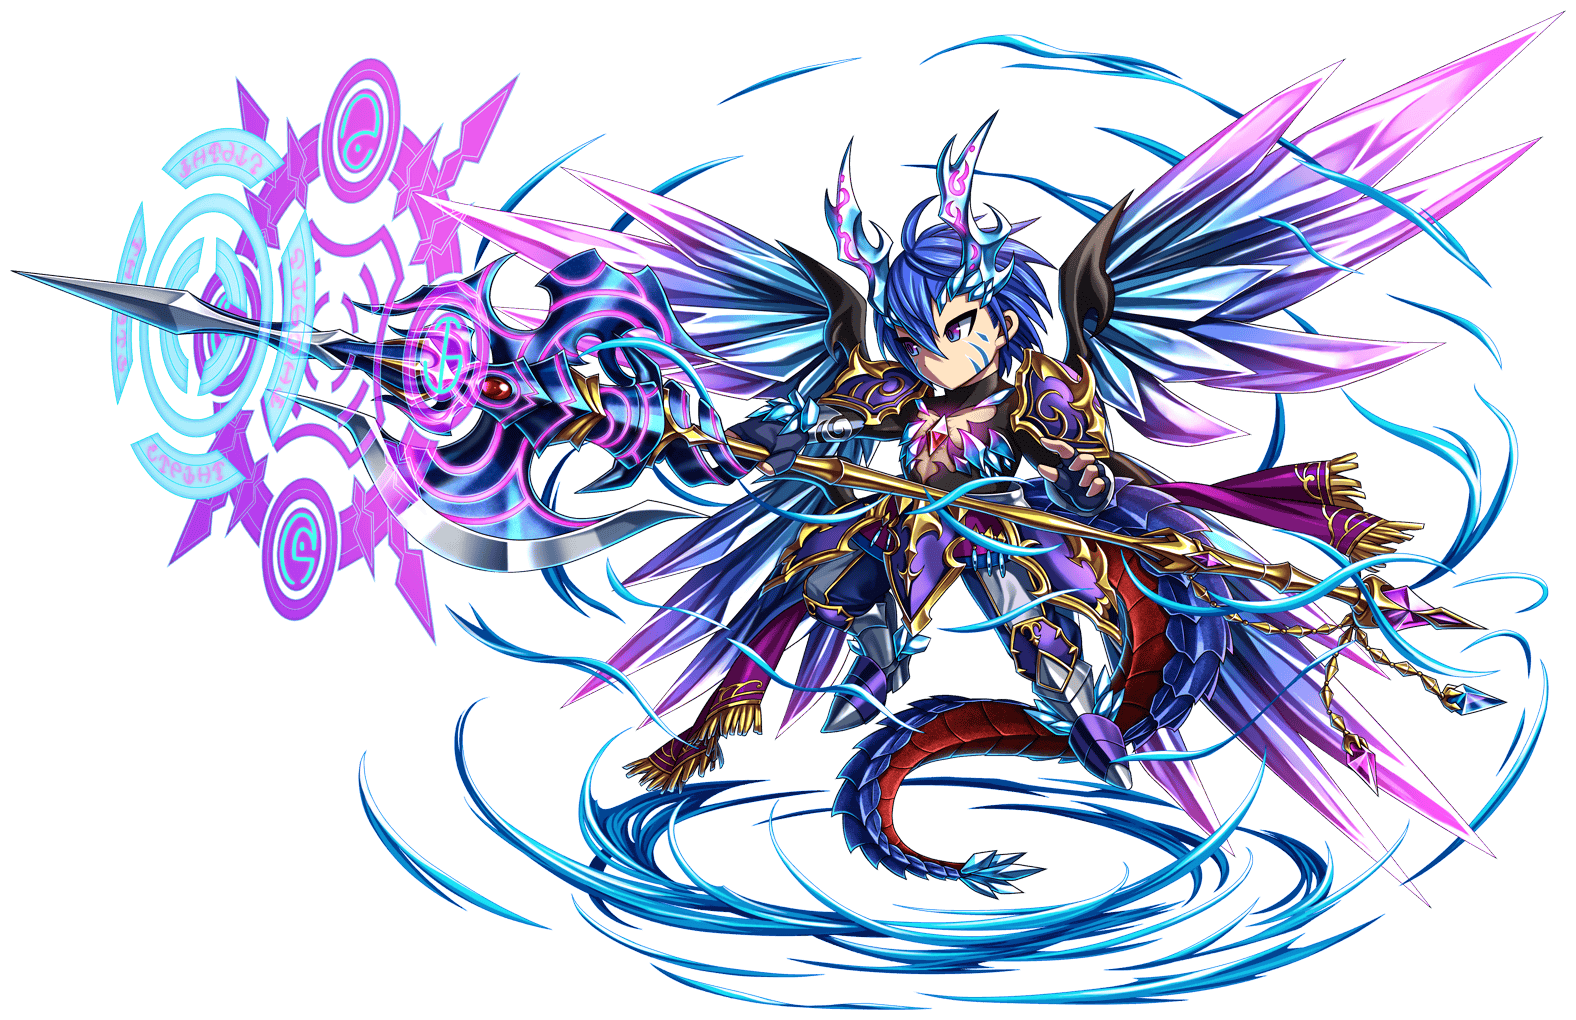 Units that look better in their lower evolution? : bravefrontier